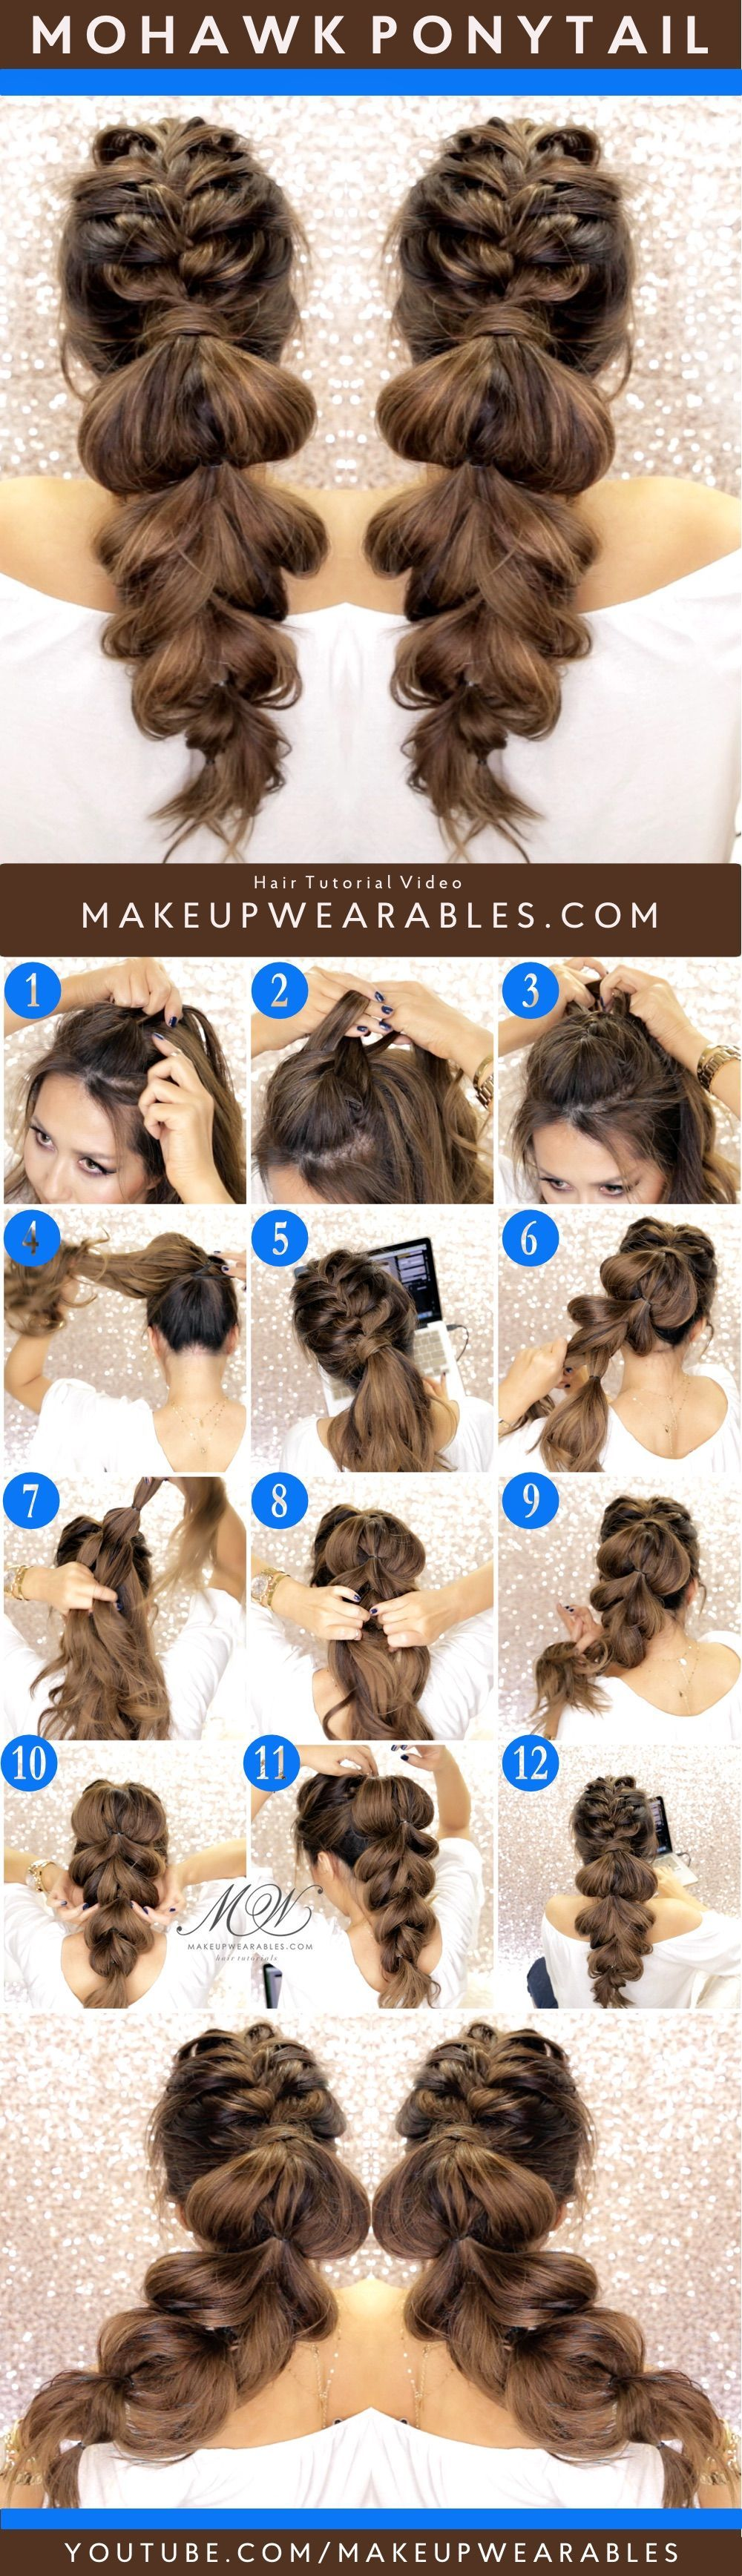 Cute mohawk braid pony hairstyle hair style hairdo